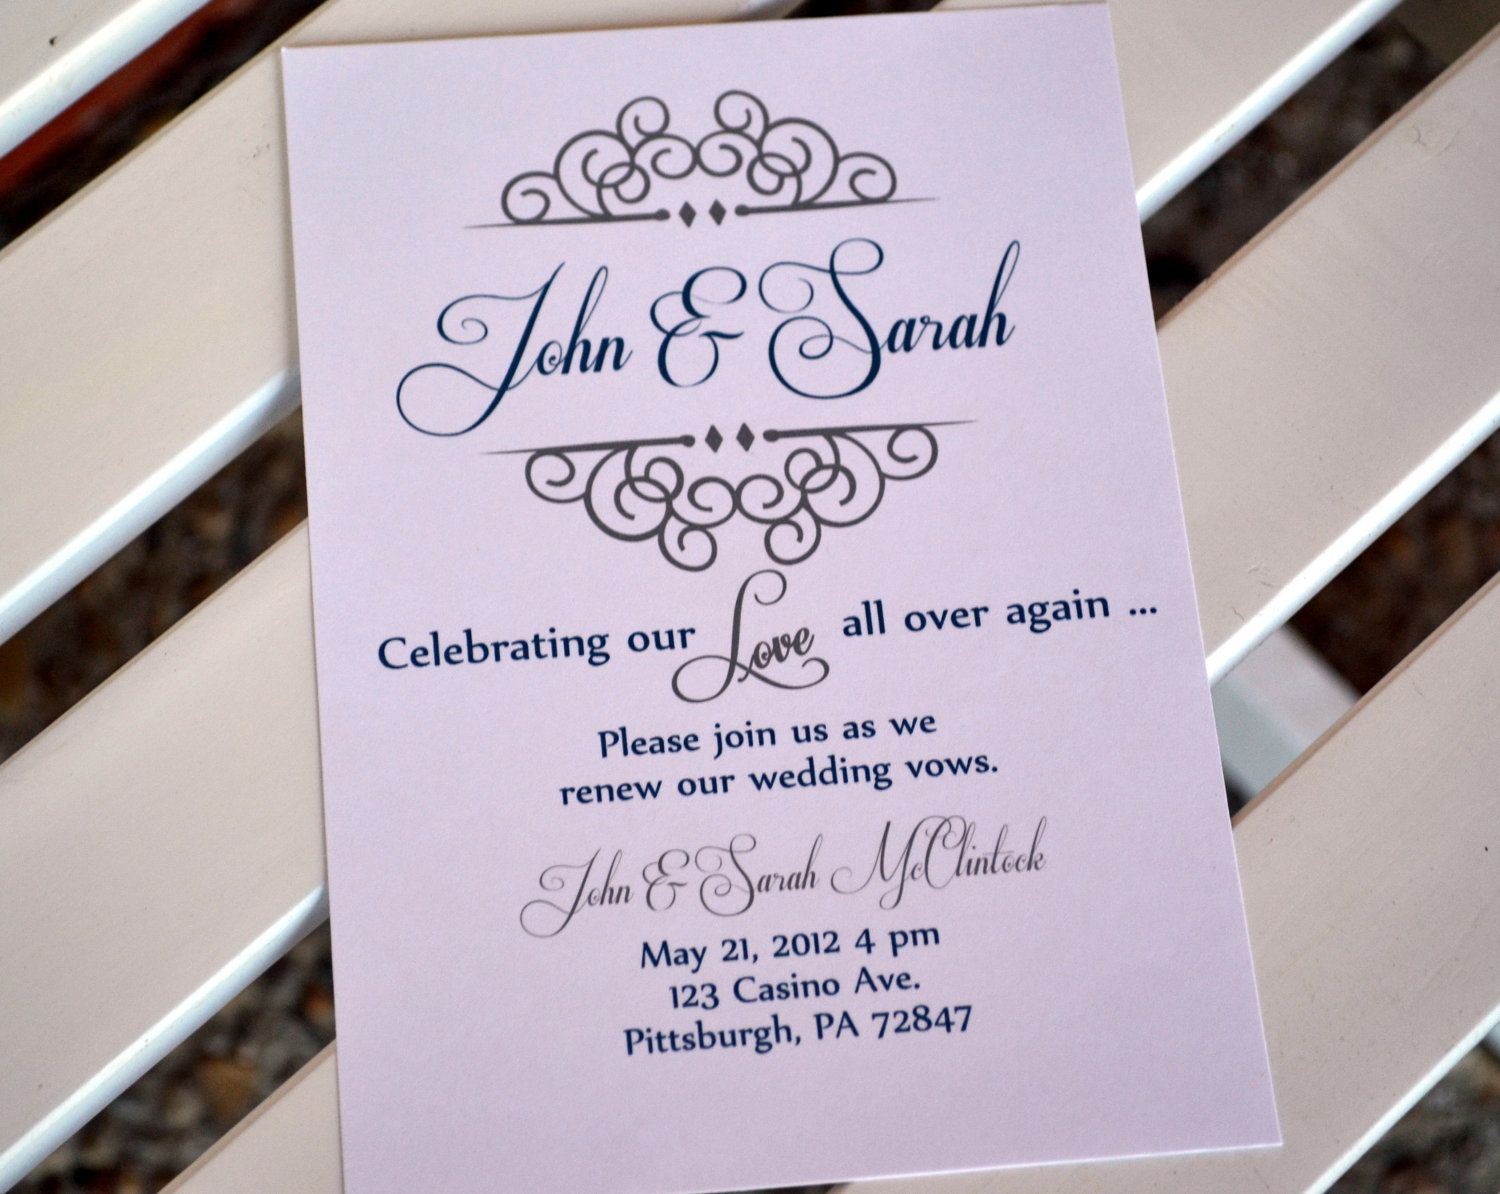 Vow Renewal Invitation Anniversary Party Celebrating Our Love All Over Again Digital